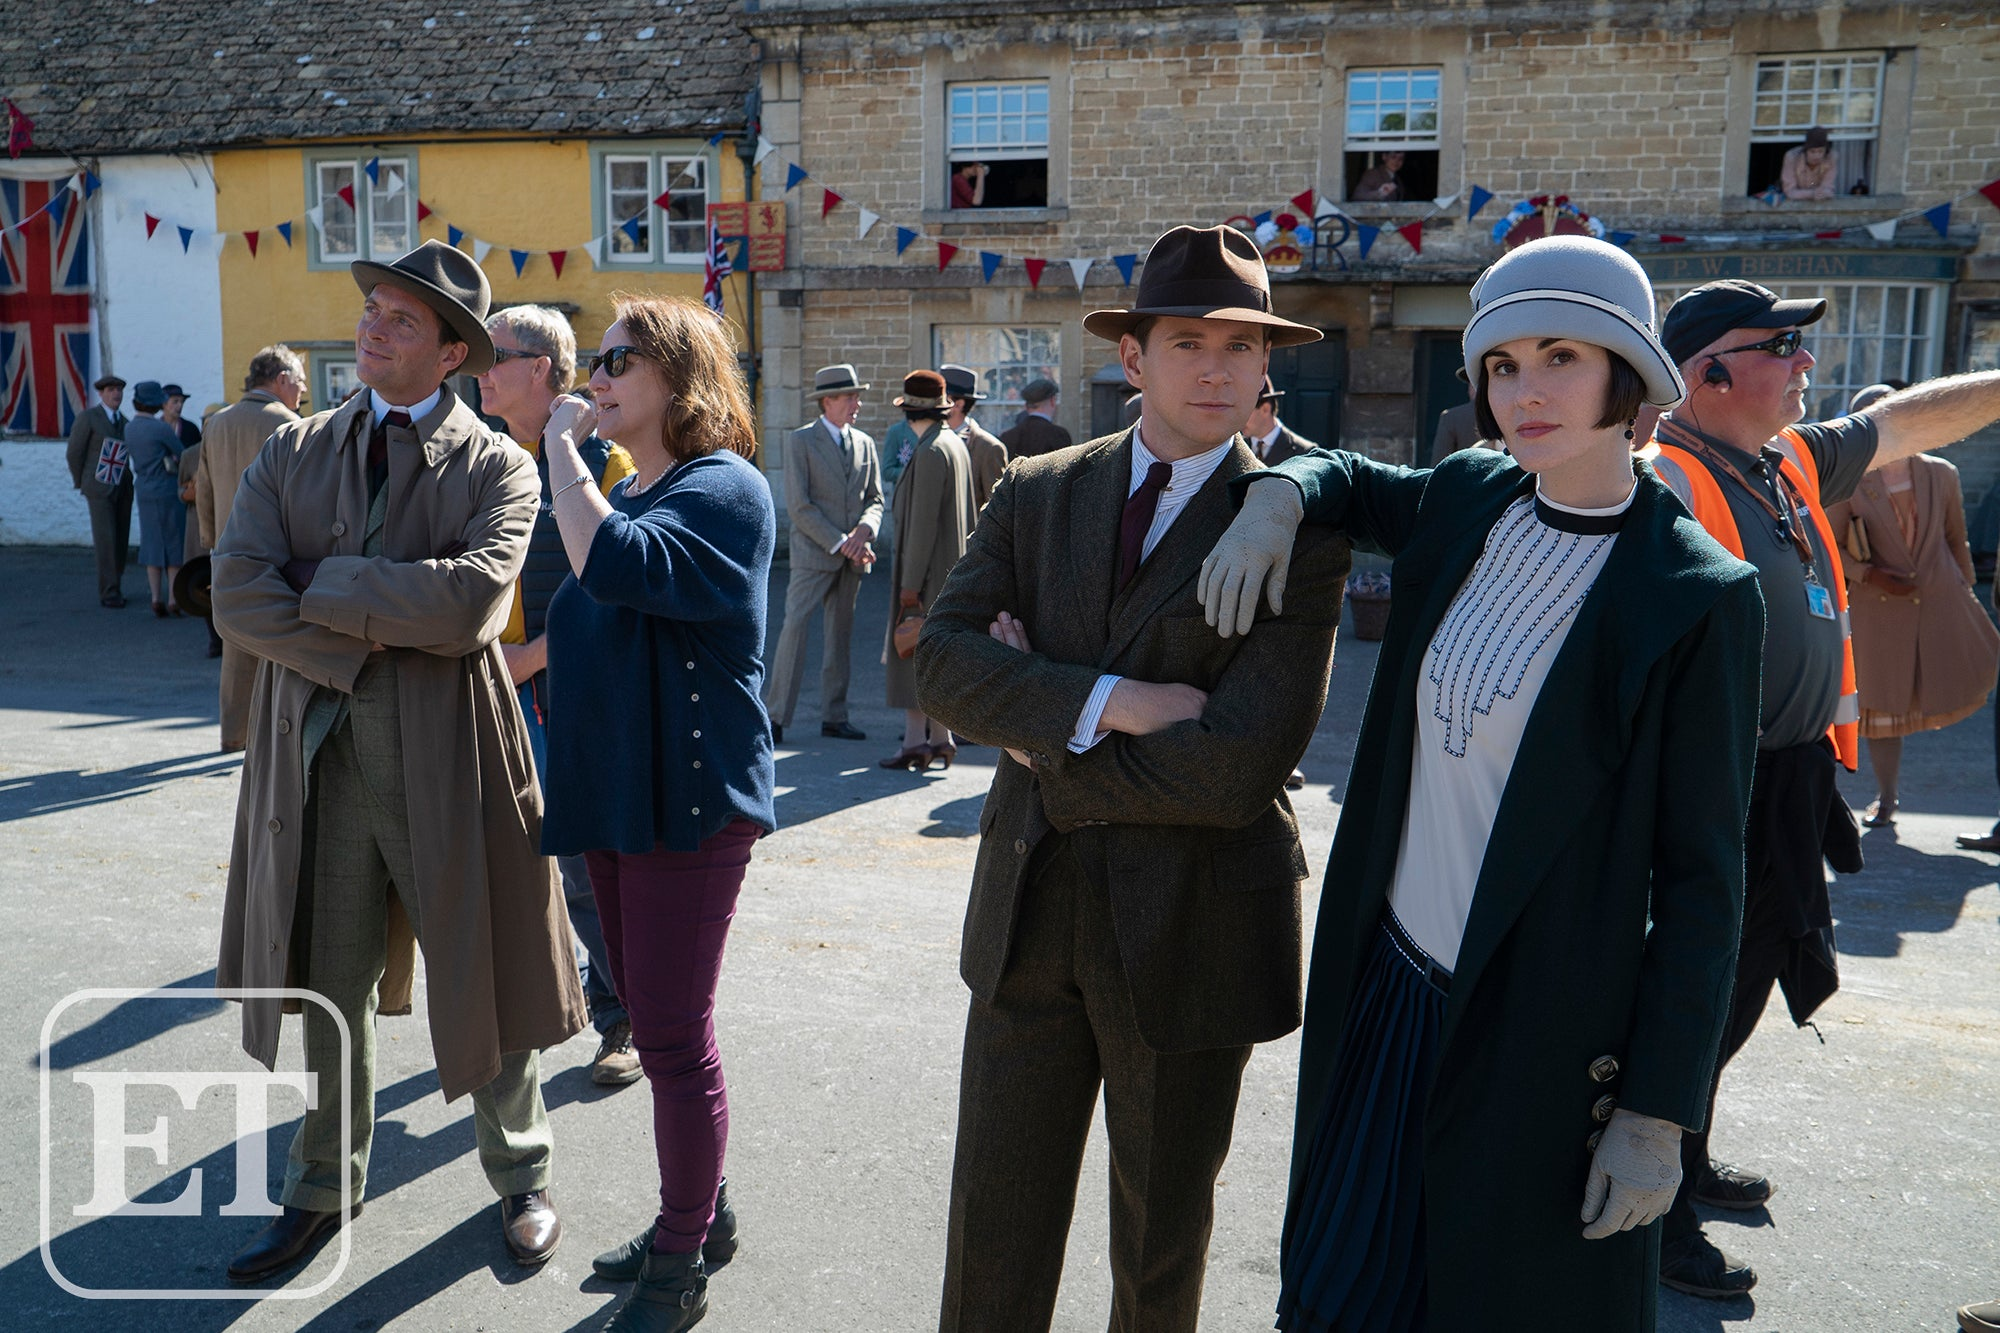 Downton Abbey': Behind the Scenes of the Movie With Michelle Dockery